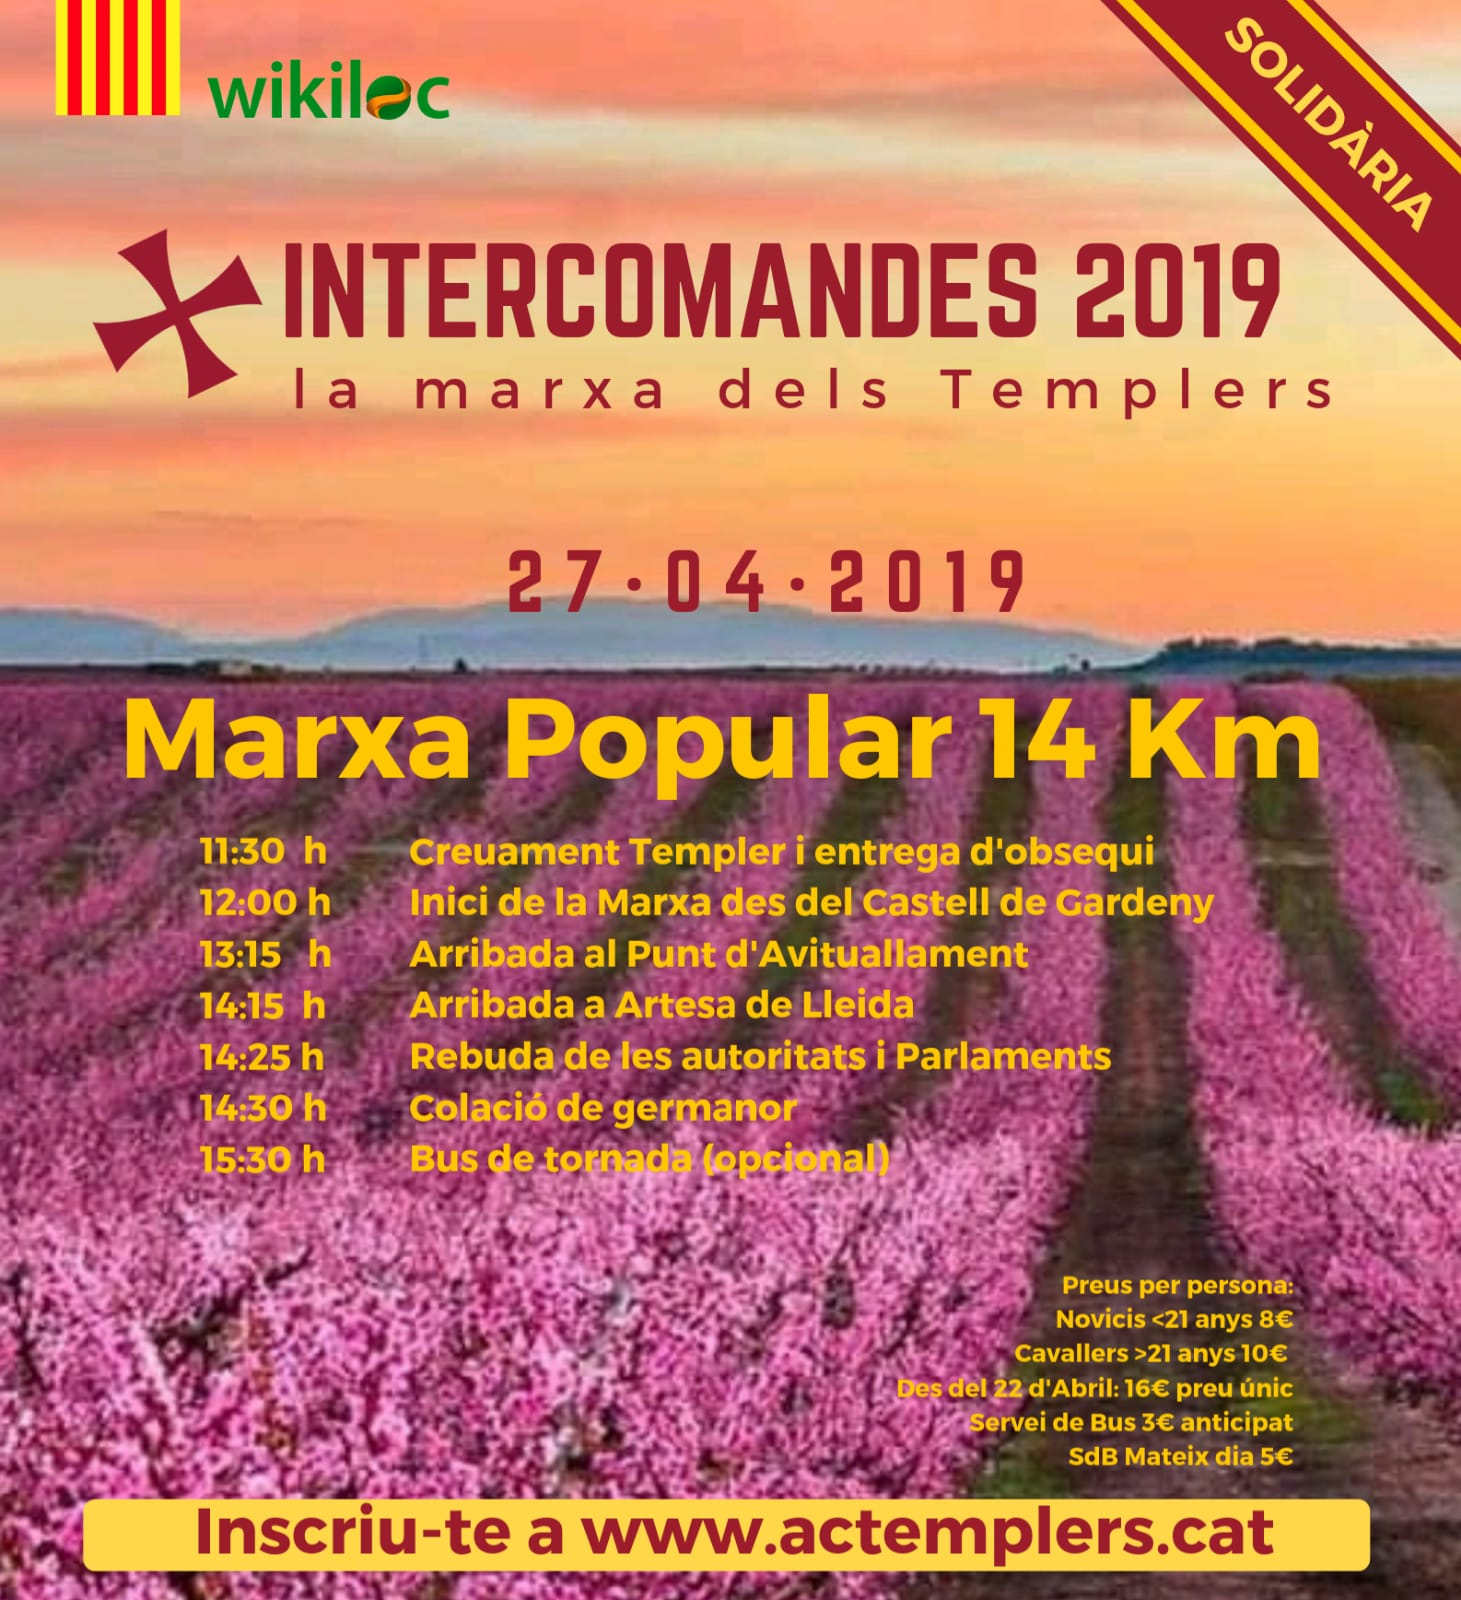 Cursa Intercomandes 2019